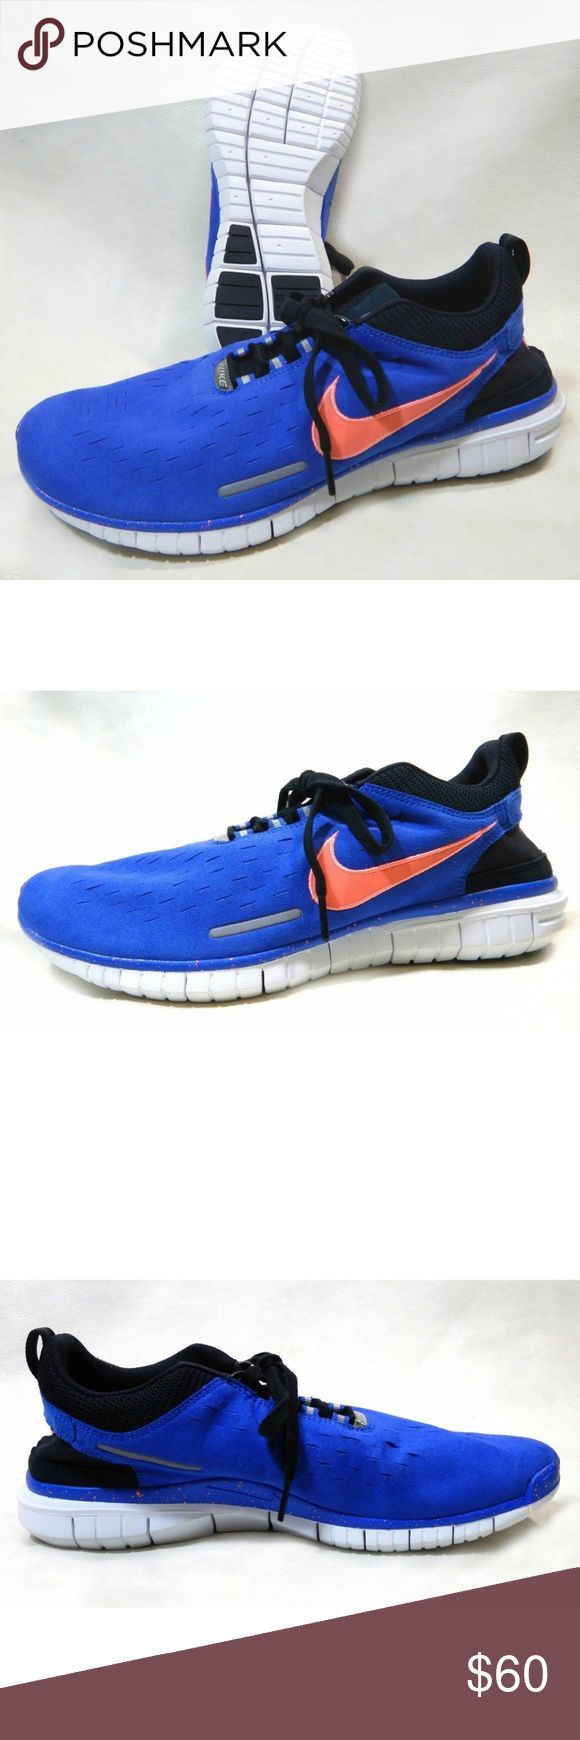 Nike Free OG 14 Running Cross Training Sneakers New without box. Measure  approximately 12 inches